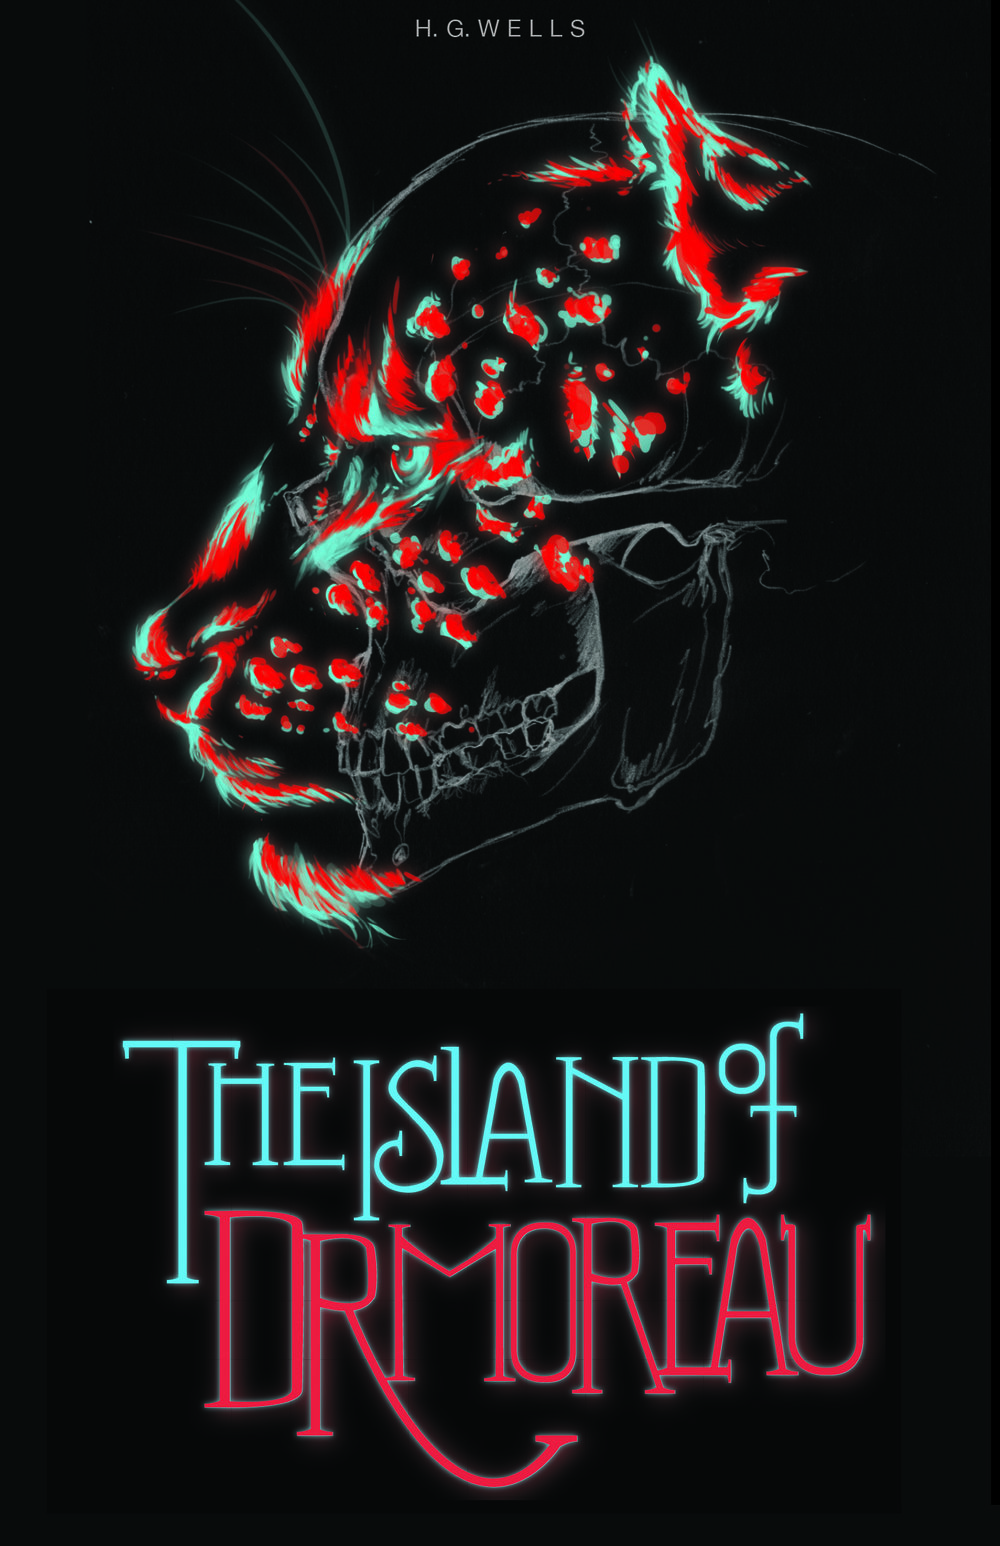 Book Cover - Design